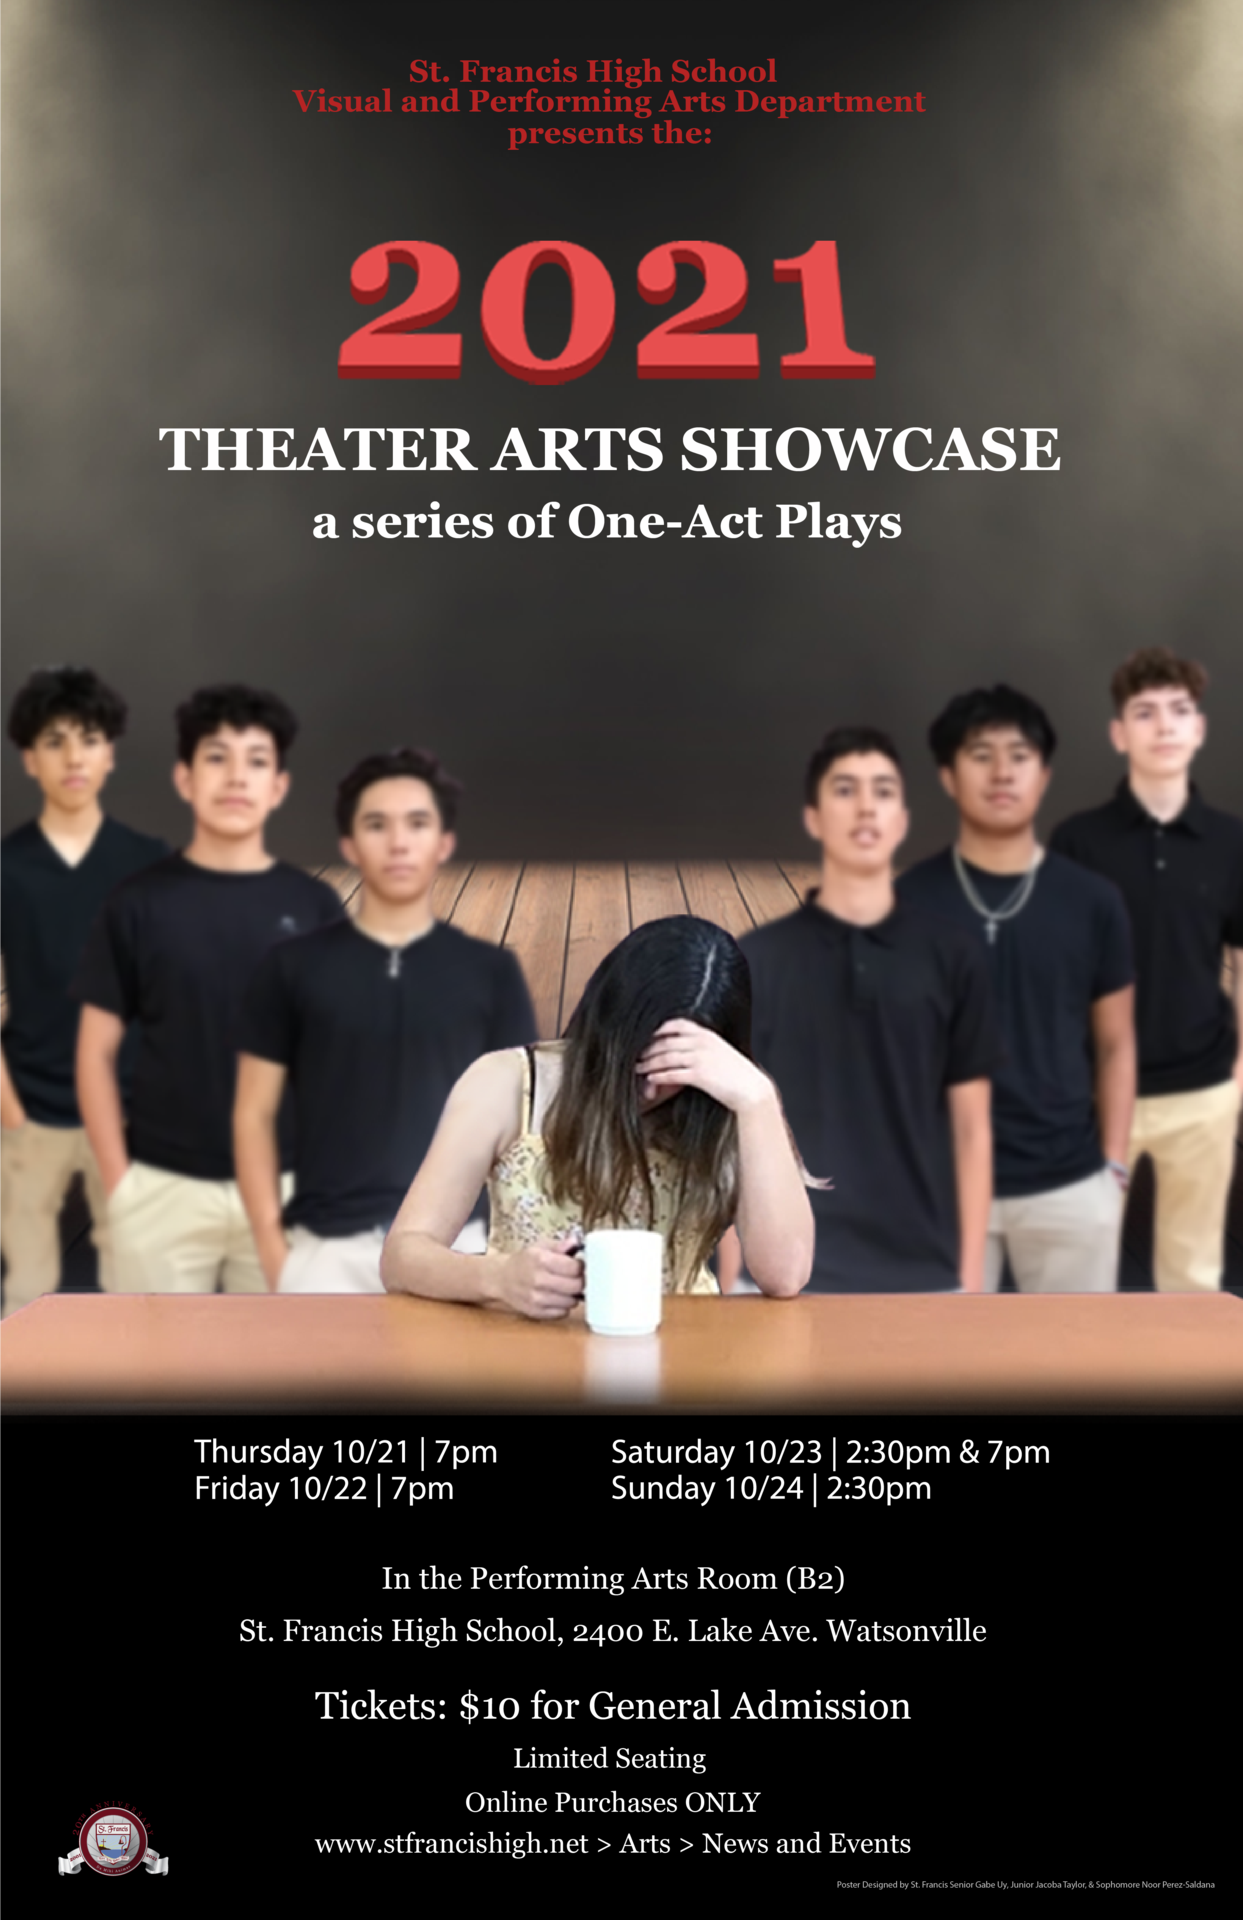 2021 Theater Arts Showcase Poster